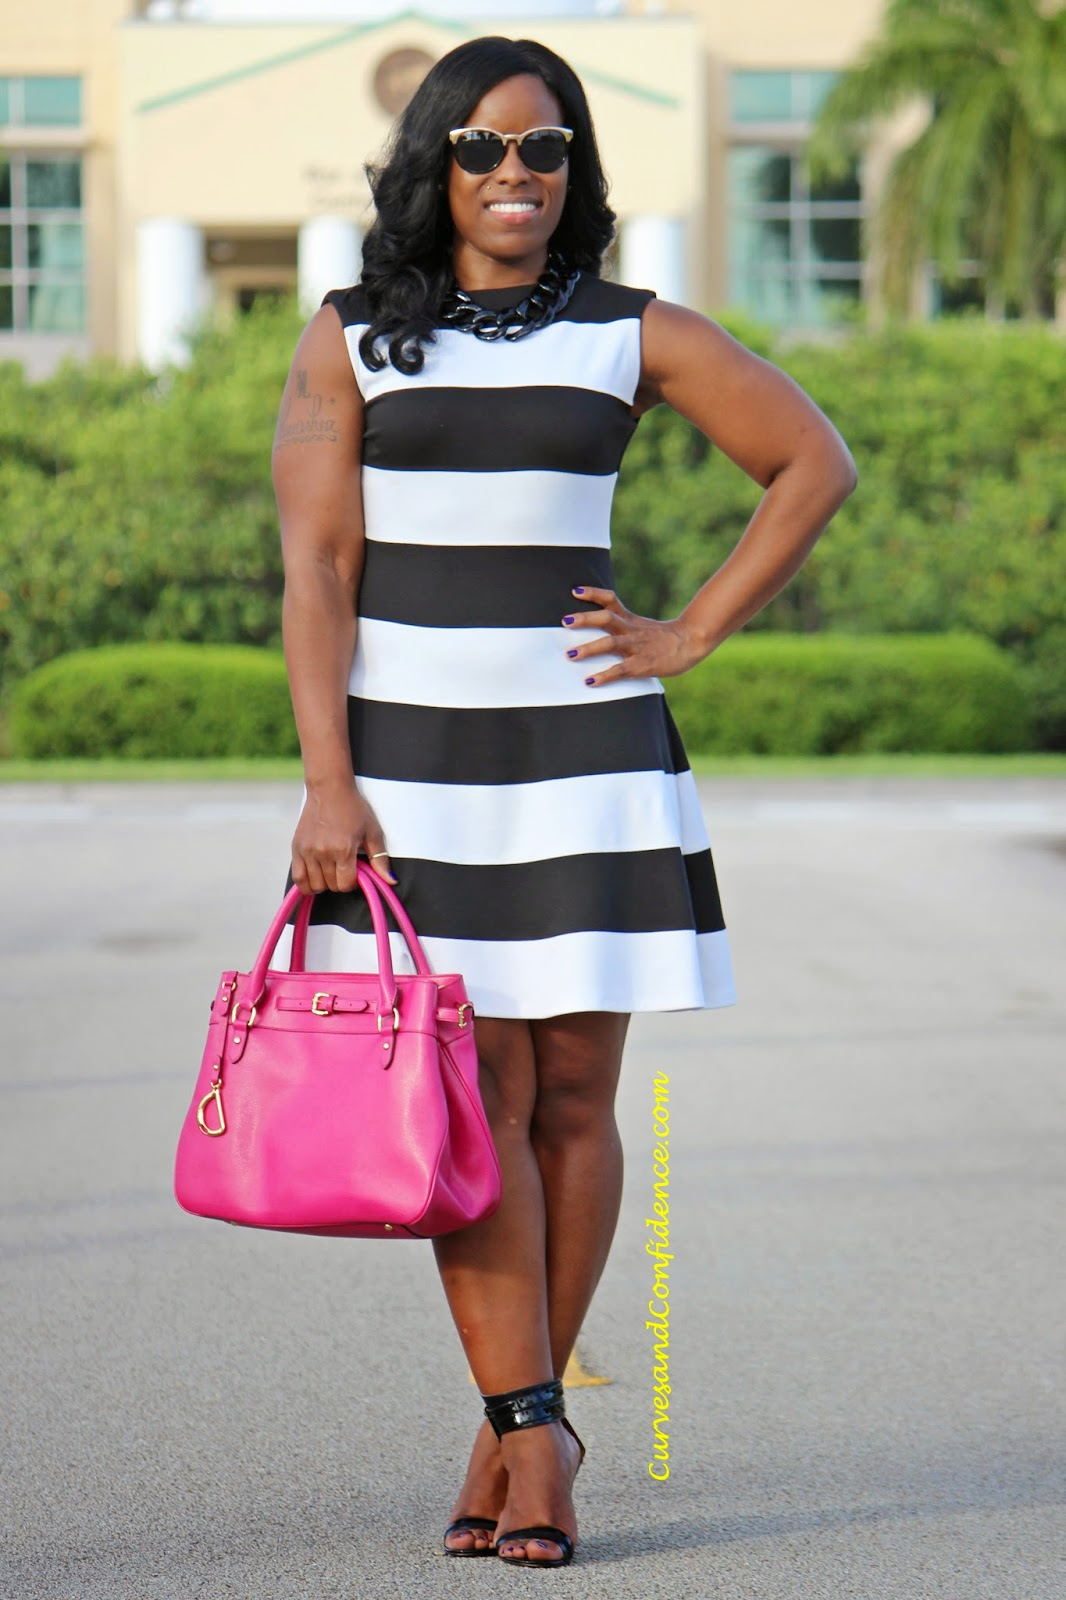 "Foto: Reprodução / <a href=""http://www.curvesandconfidence.com/2014/06/fit-and-flare-bold-stripes.html"" target=""_blank"">Curves and Confidence</a>"